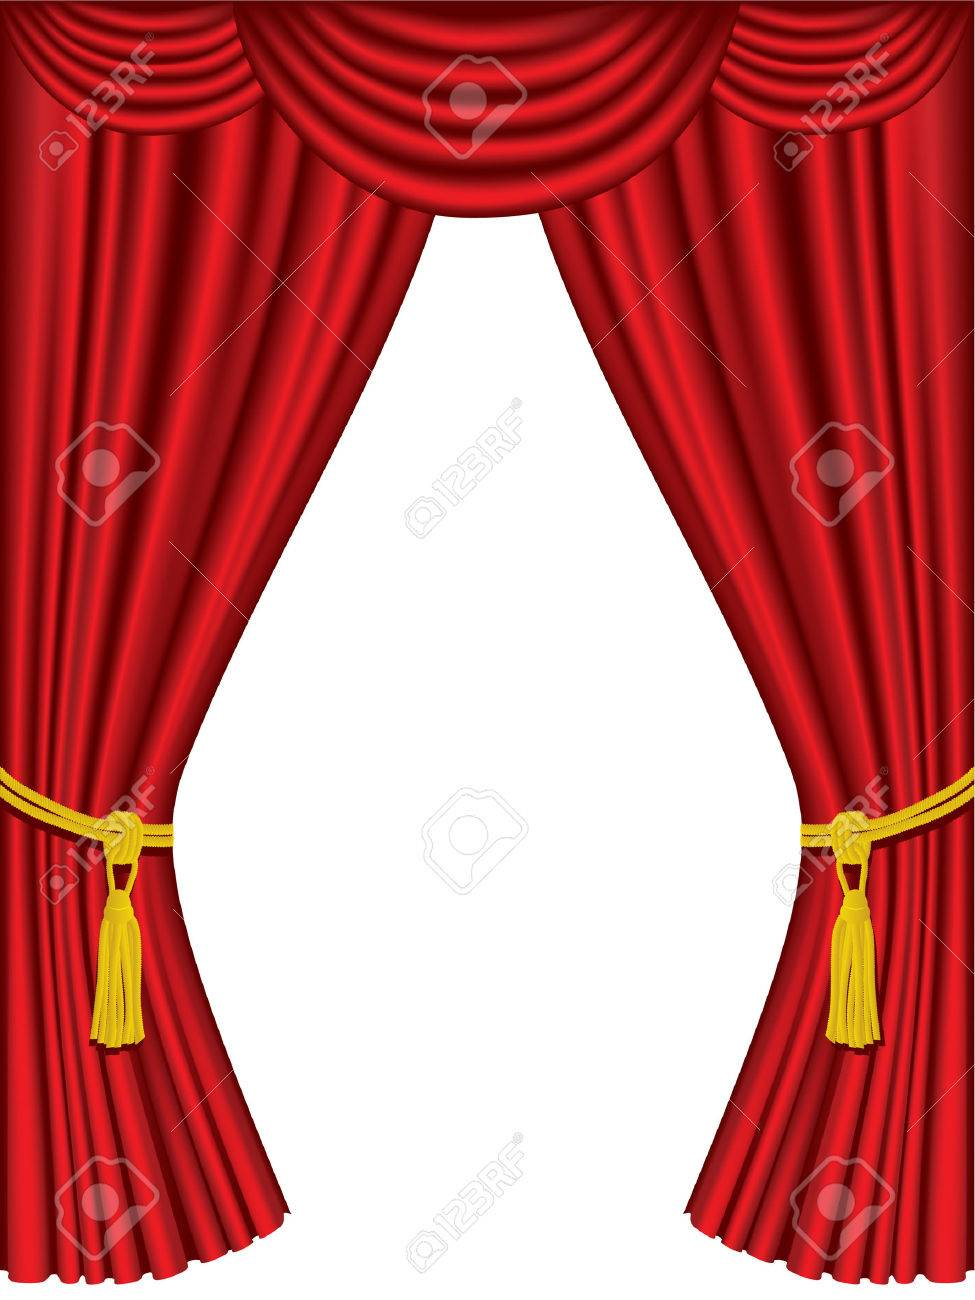 vector sacramento curtainage photo concept oklahoma in curtain tx amazing school ohiostage of stage royalty curtains free rentalsstage rentals houston size clip replacement art theater and drapes image hardware cleaning full